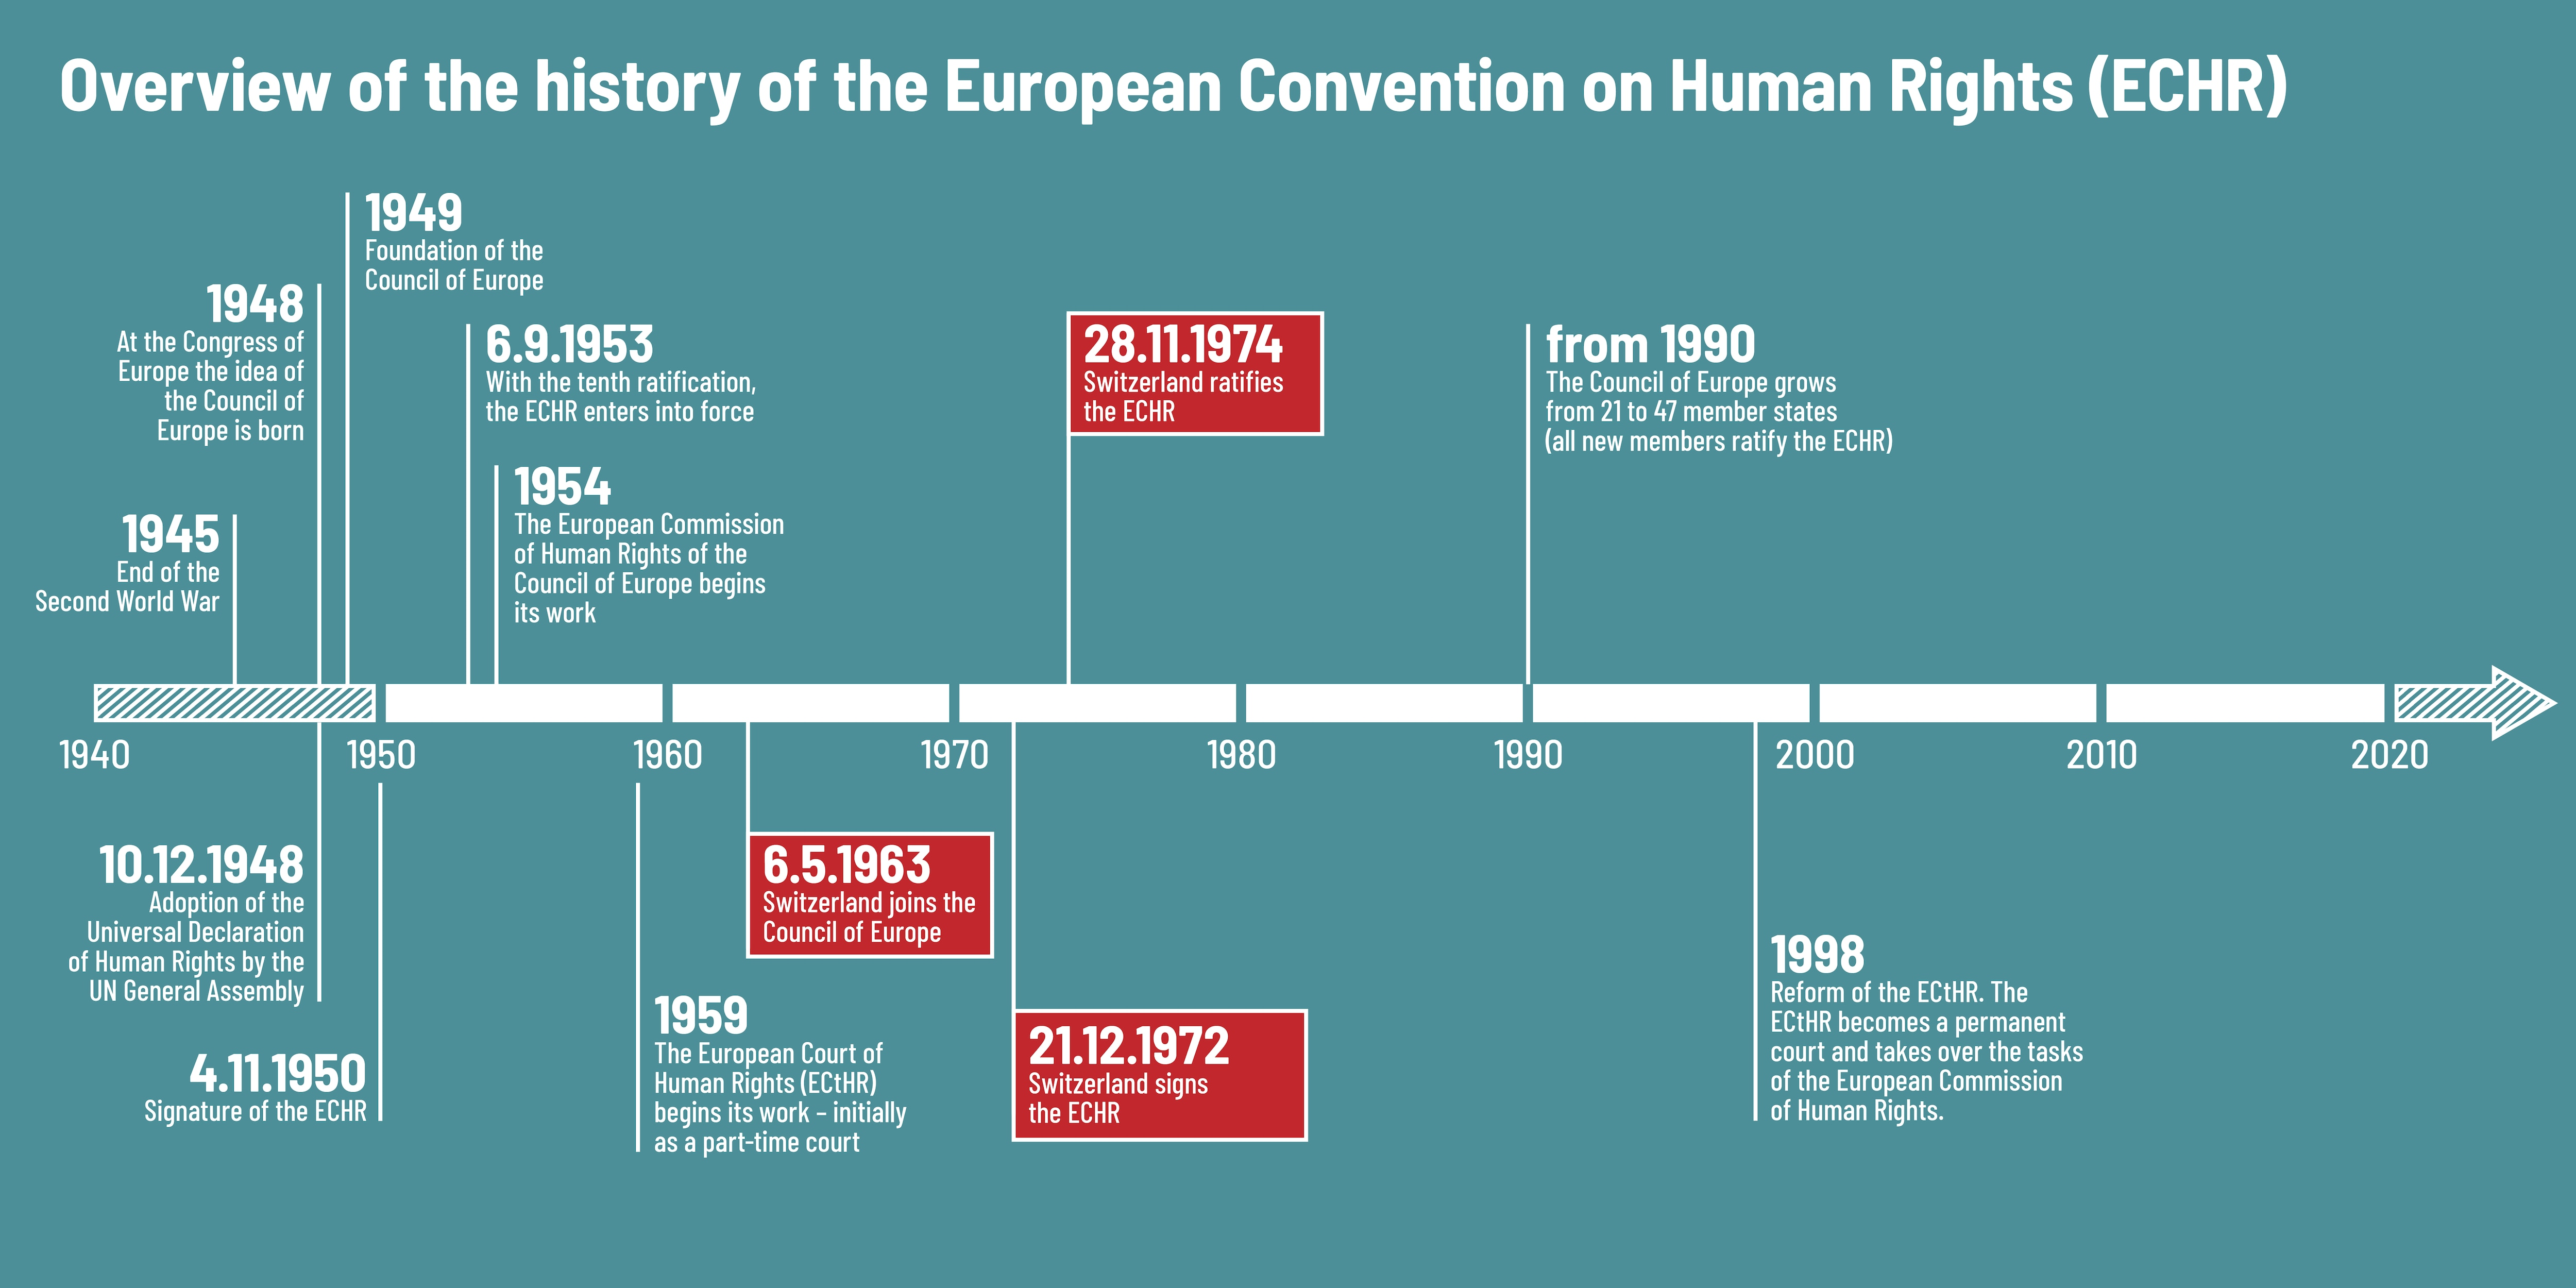 A timeline showing the history of the ECHR and highlighting that in 1963, Switzerland joined the Council of Europe, and in 1974, the convention was ratified.